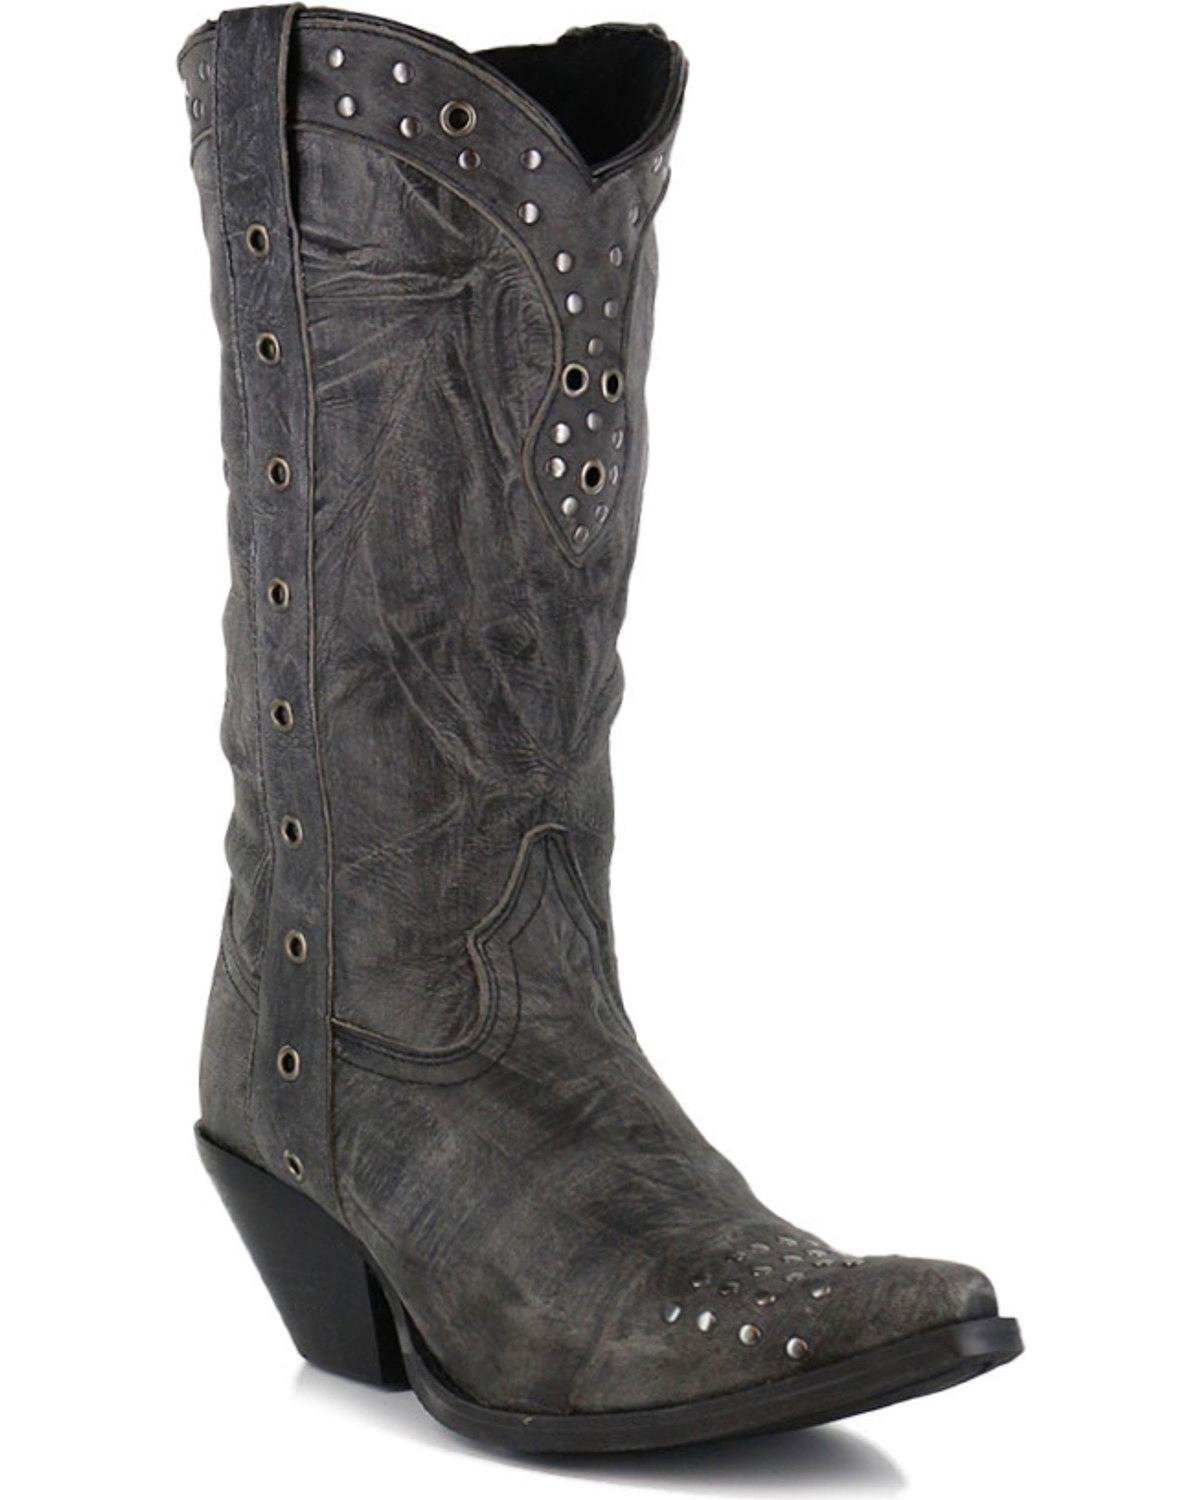 Durango Women's DRD0127 Western Boot, Charcoal, 8.5 M US